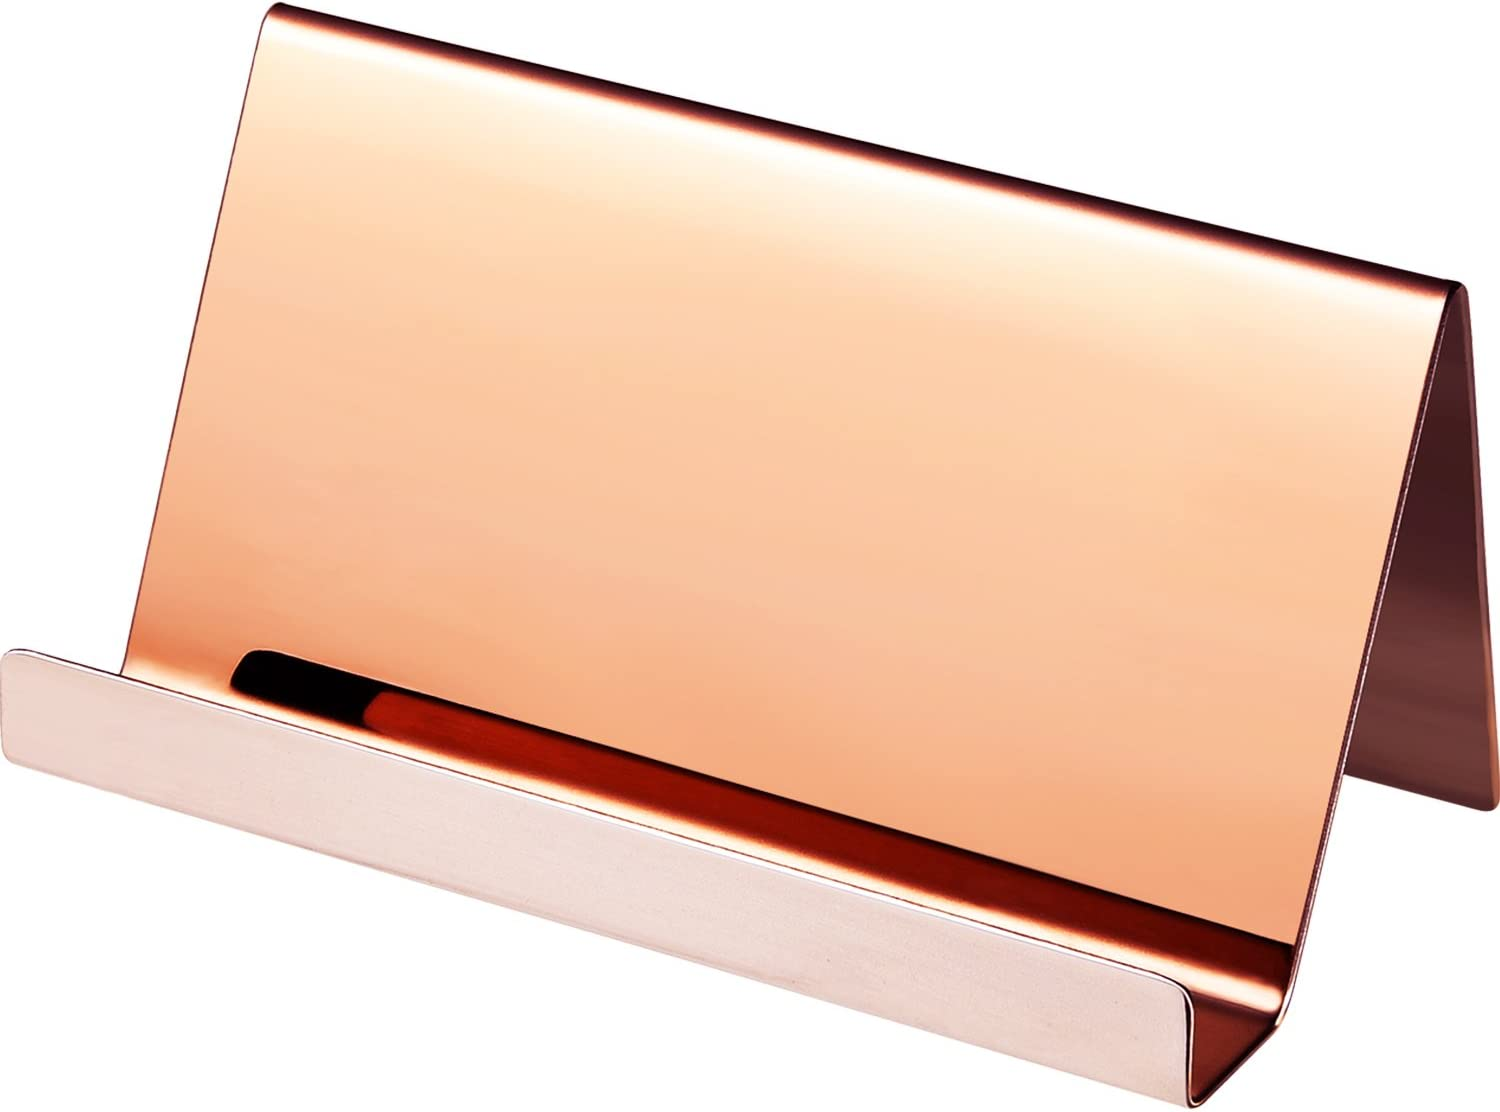 Maxdot Stainless Steel Business Card Holders Name Cards Display Desktop Organizer, Rose Gold (1)